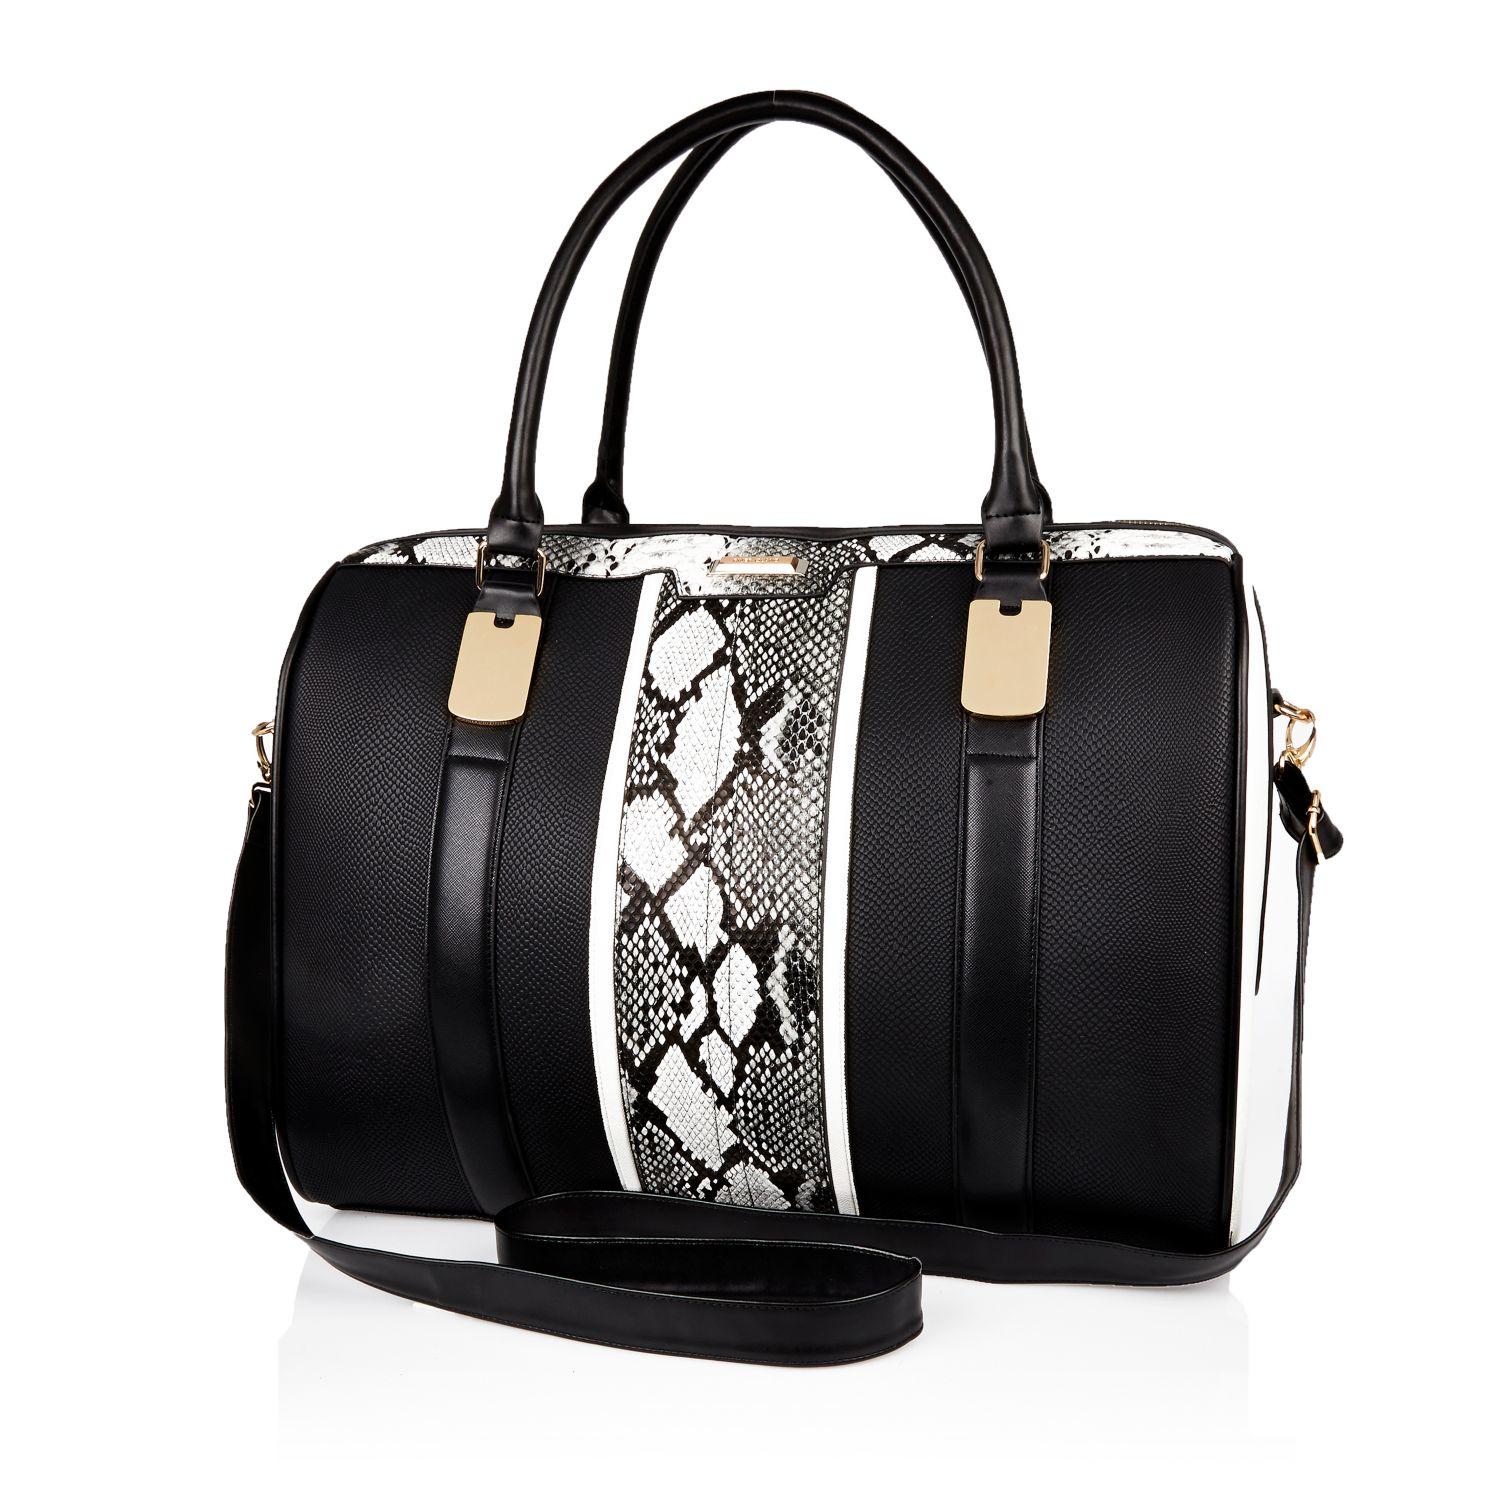 River island Black Snake Print Weekend Bag Black Snake Print ...